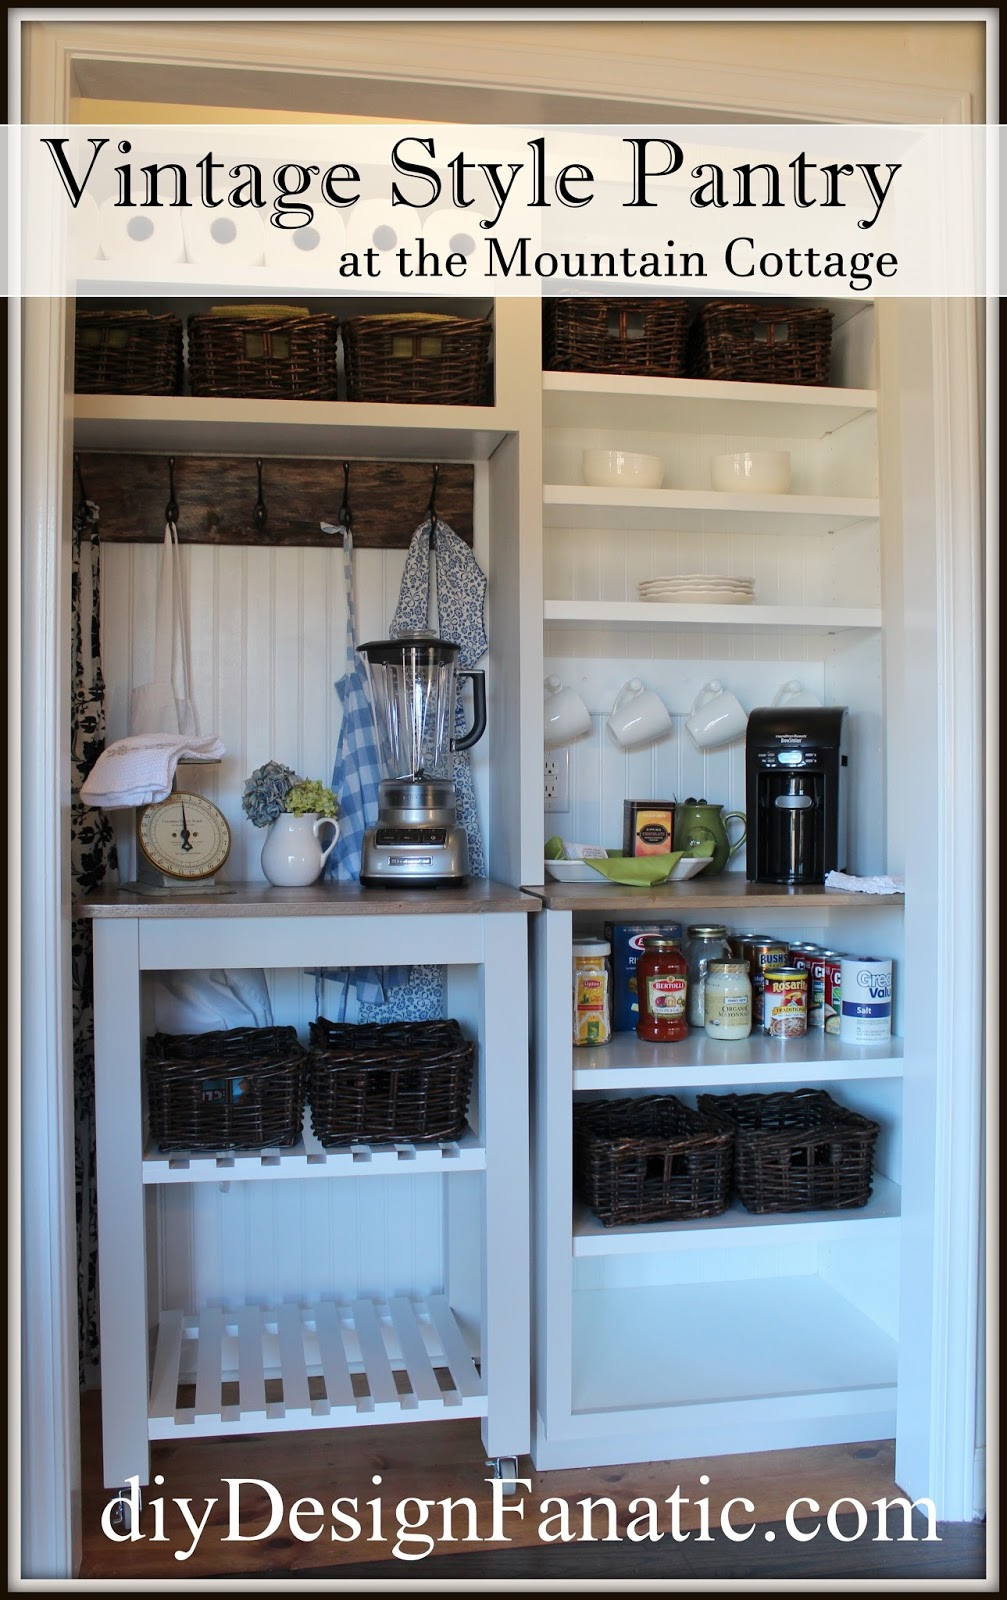 organized pantry, beautiful pantry, coffee station, kitchen cart